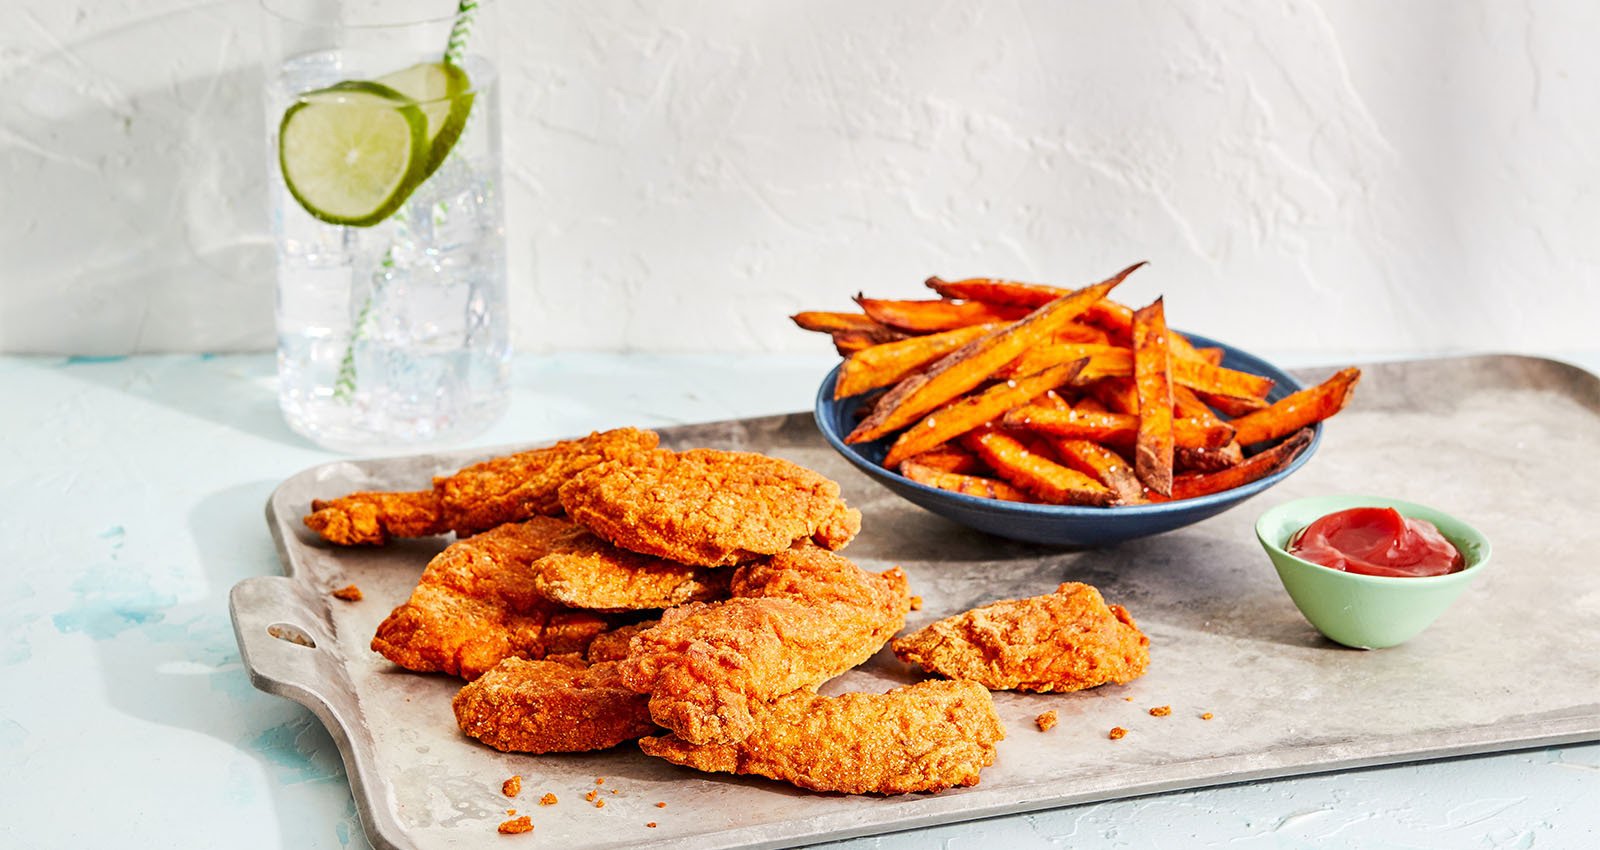 CAULIPOWER Chicken Tenders on a tray with a bowl of sweet potato fries